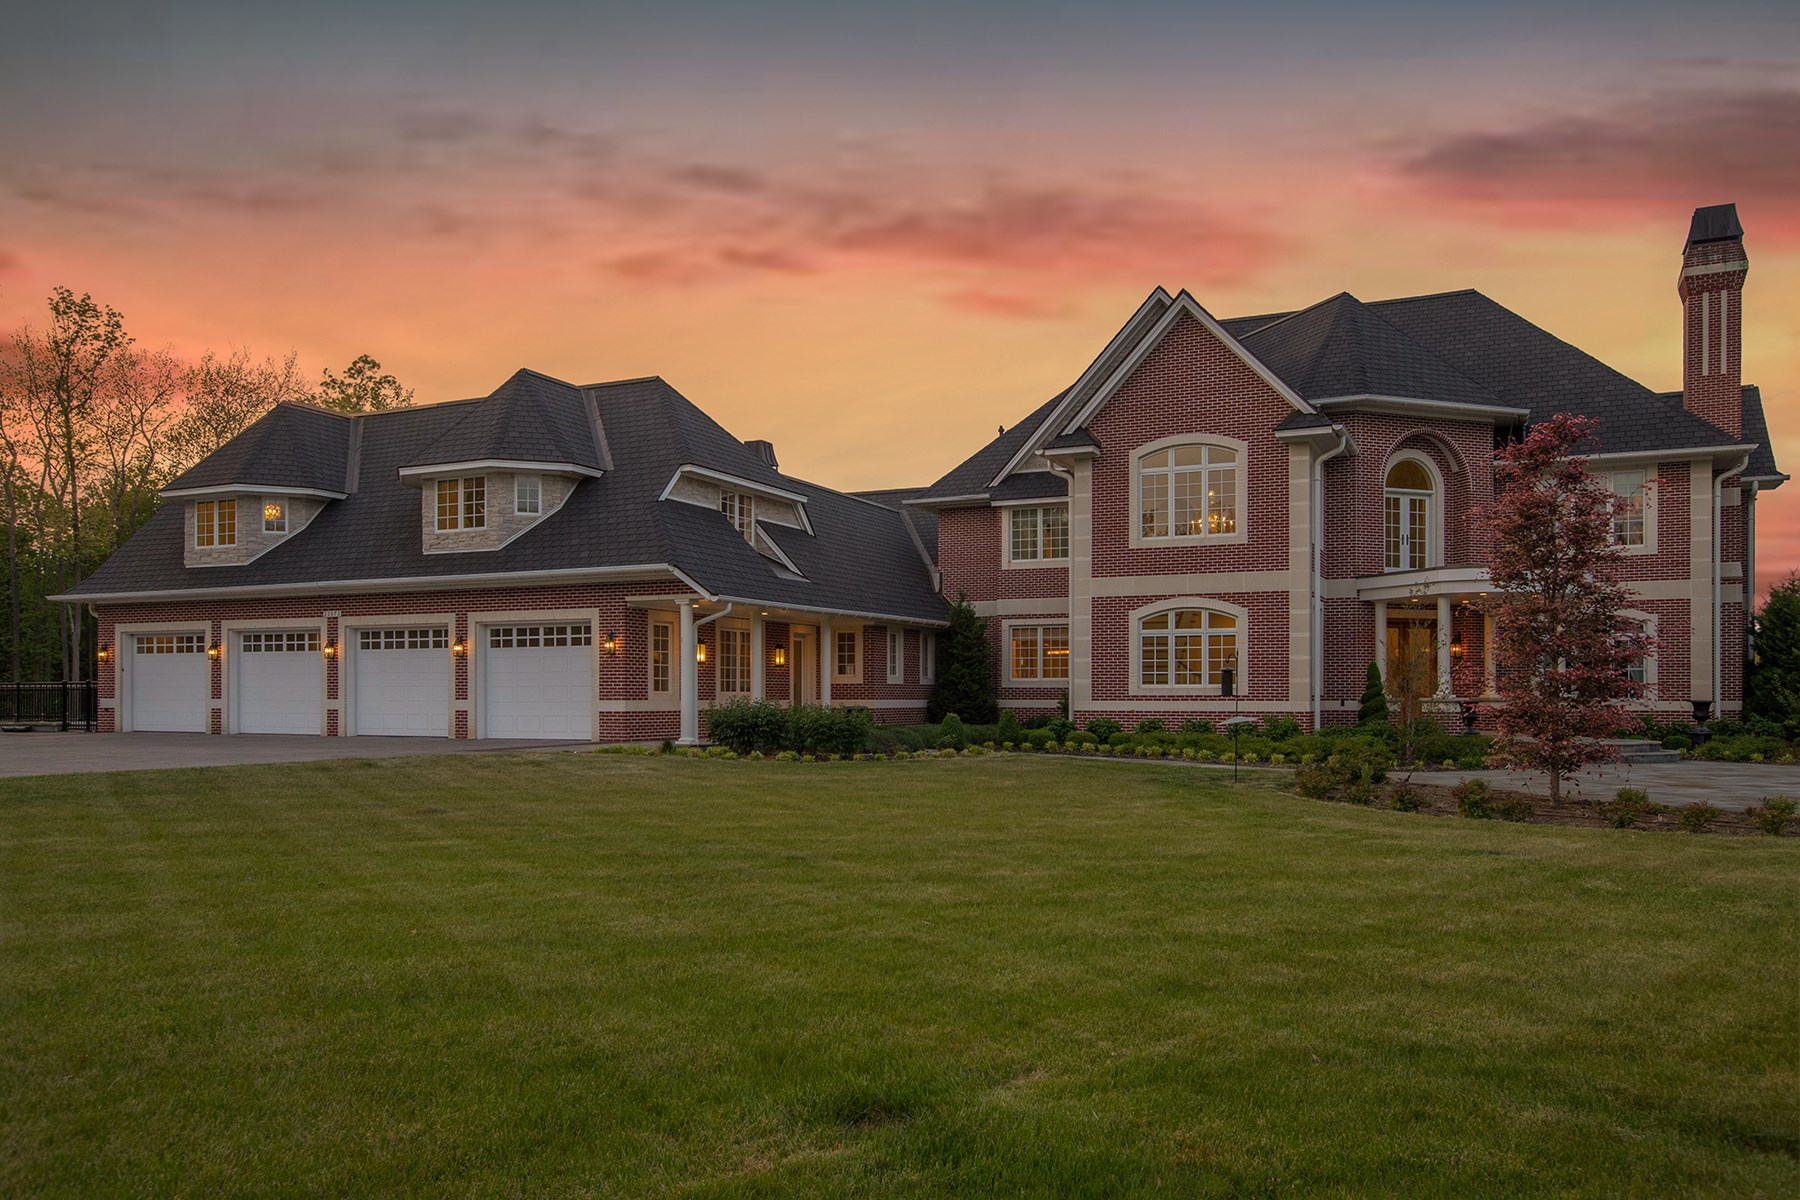 Sustainable Luxury Home For Sale in Southwest Michigan